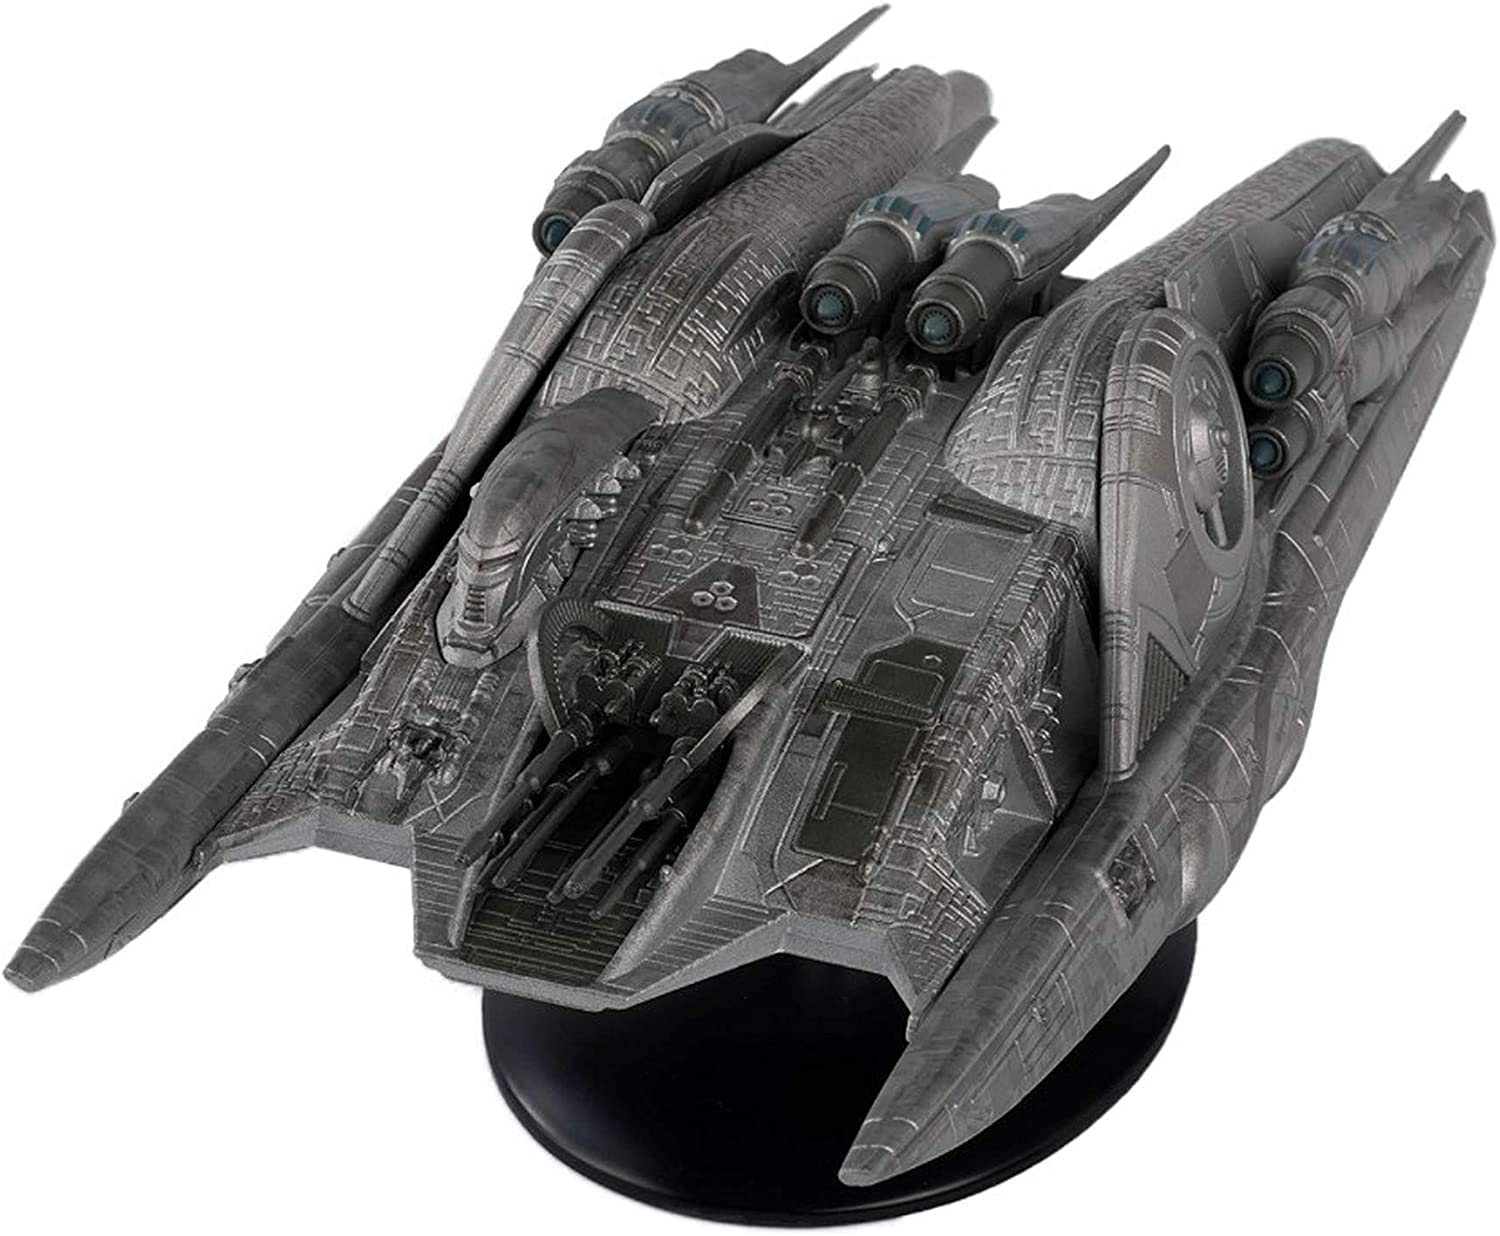 Hero Collector   Battlestar Galactica Collection   Heavy Raider with Magazine Issue 19 by Eaglemoss: Toys & Games